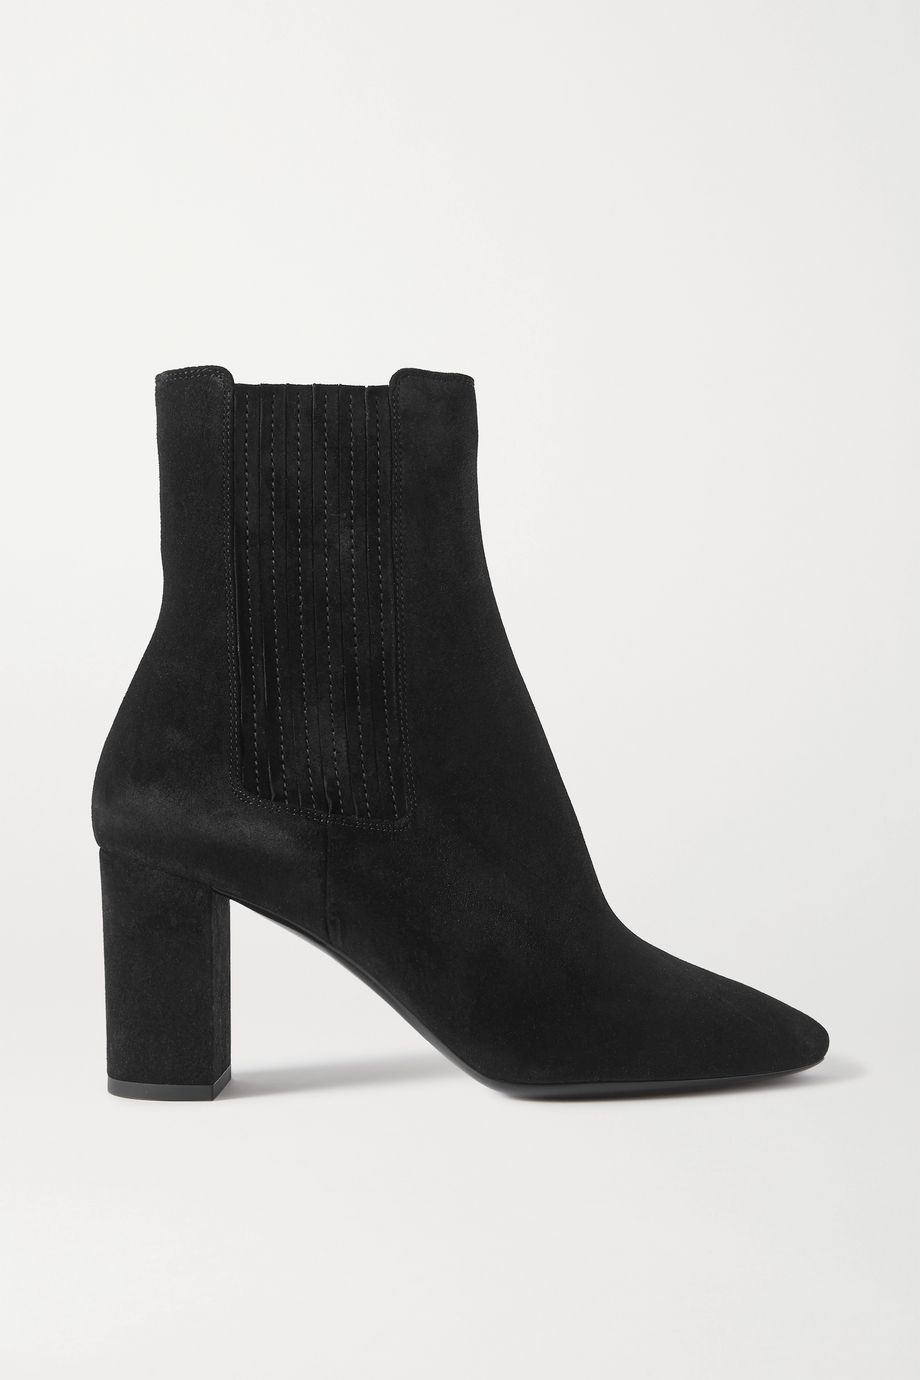 SAINT LAURENT Mica suede ankle boots